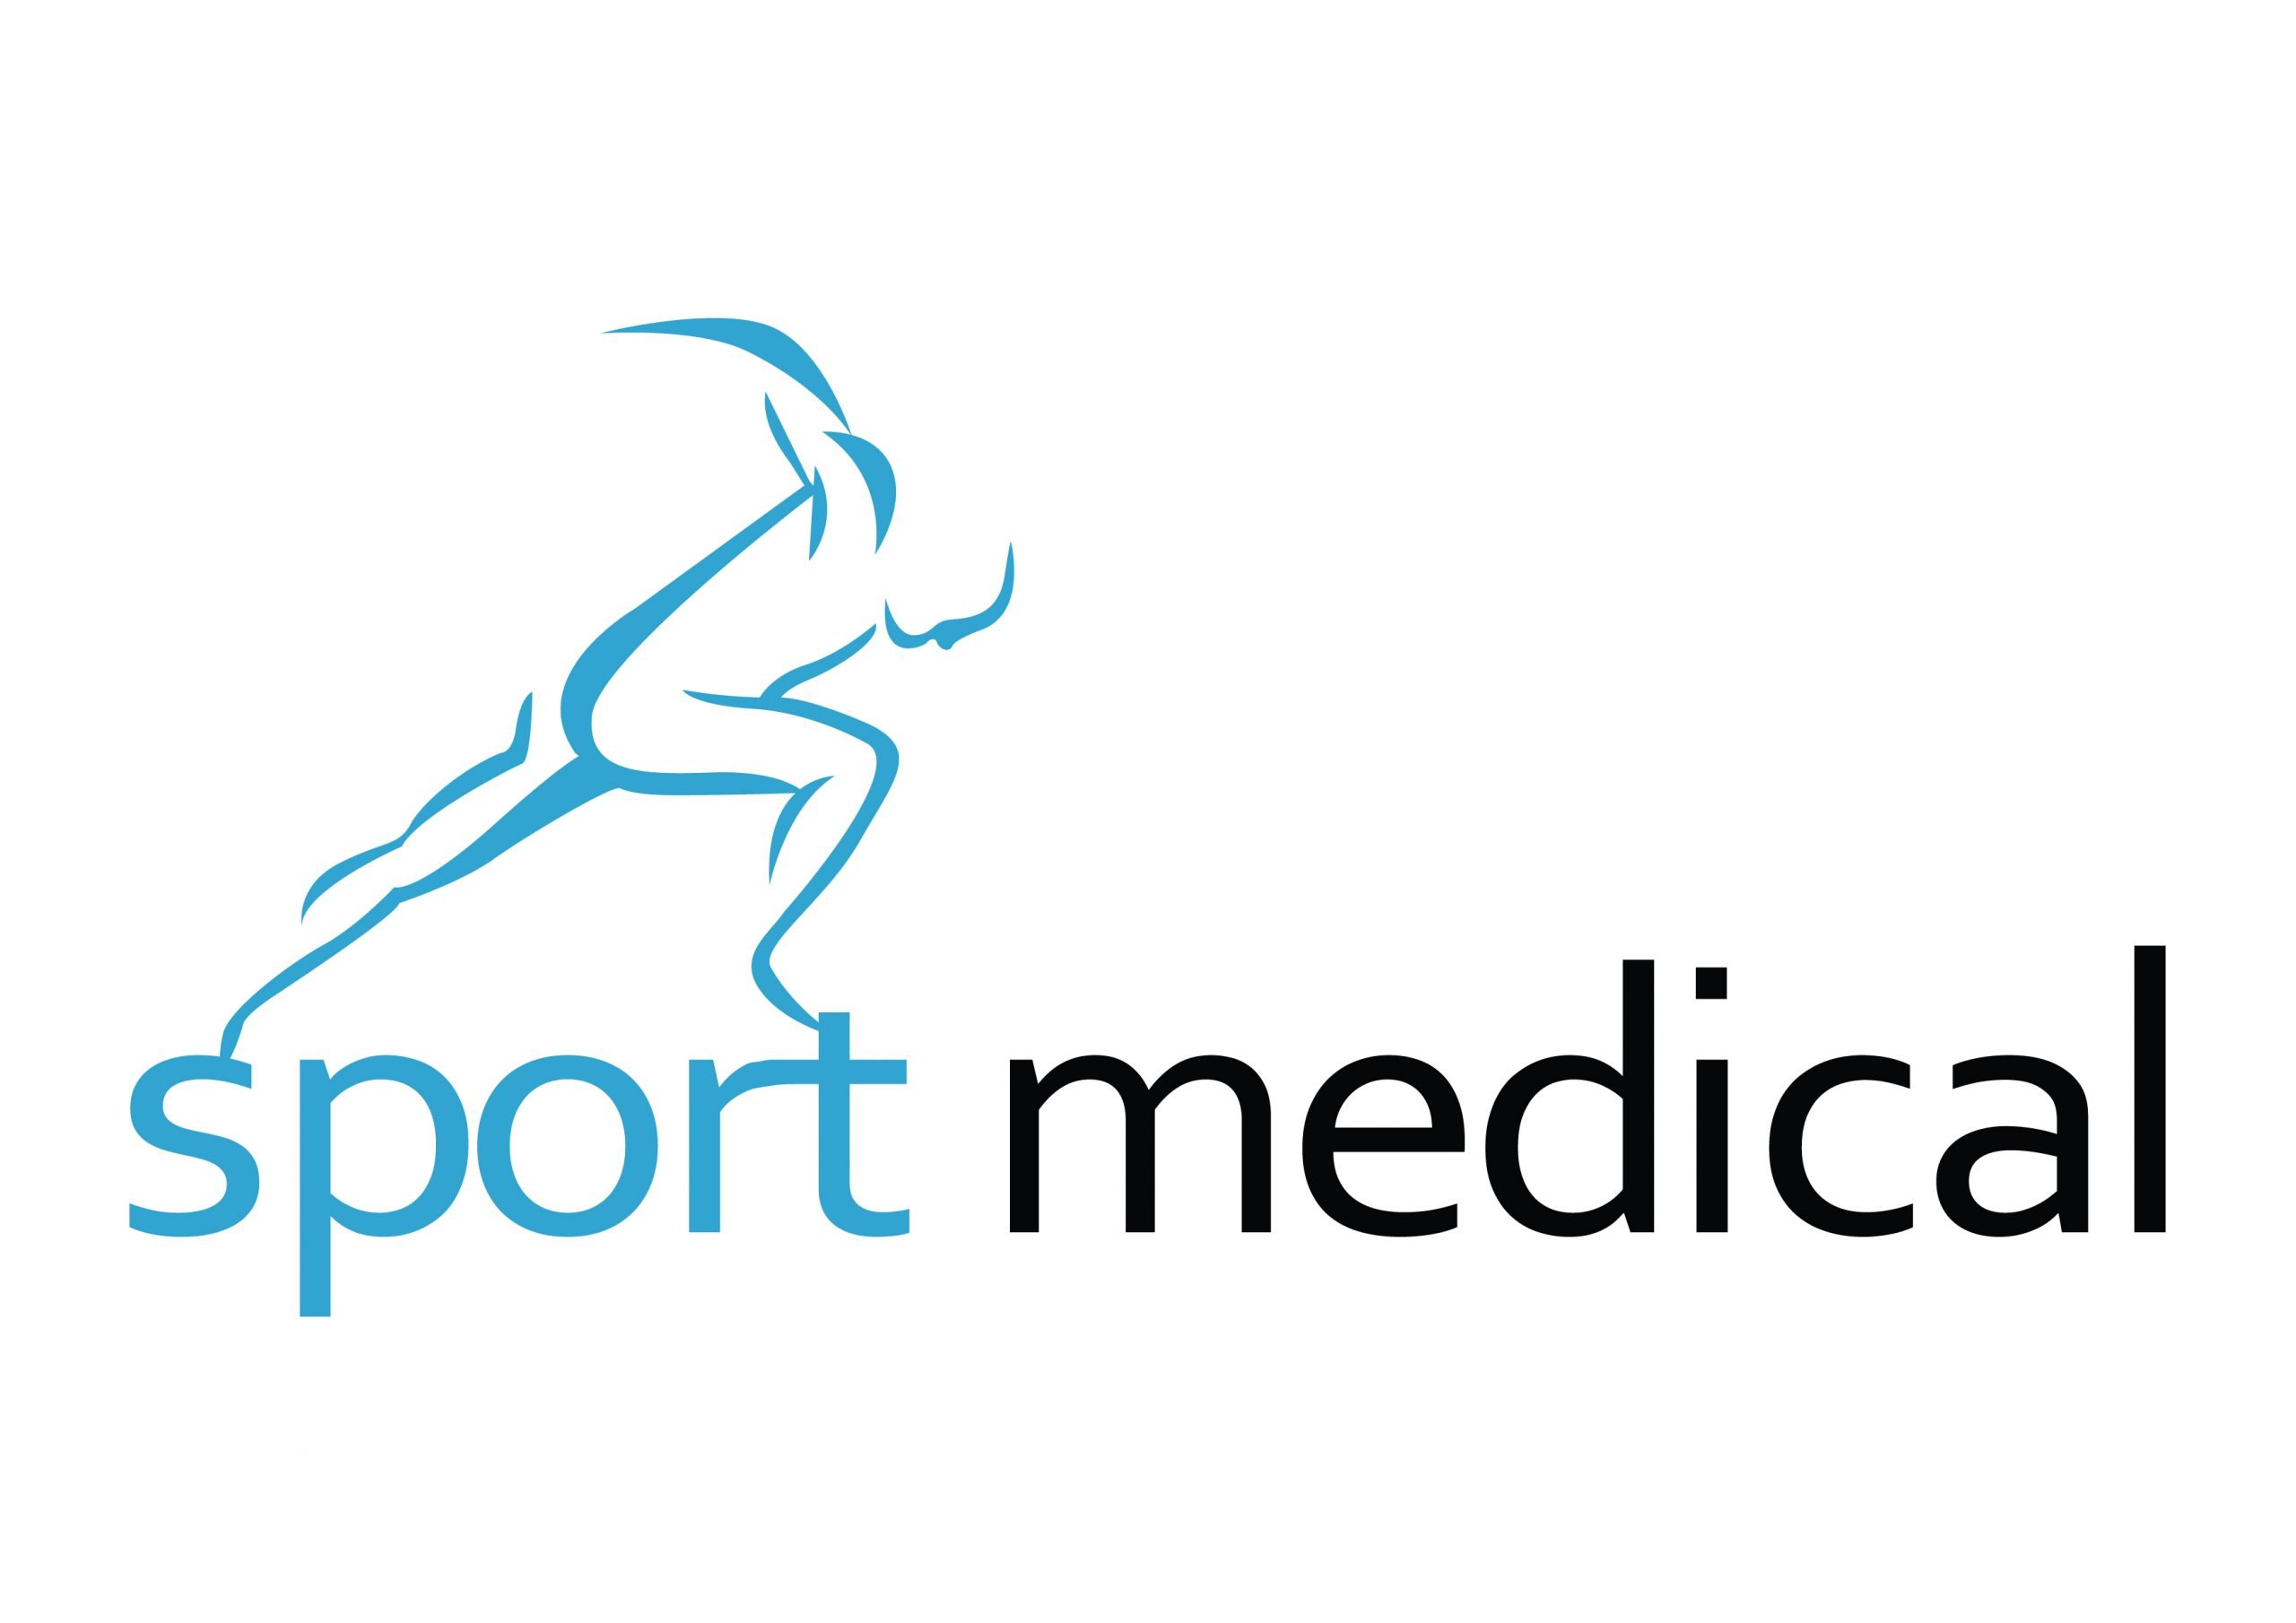 SportMedical_horizontal-01